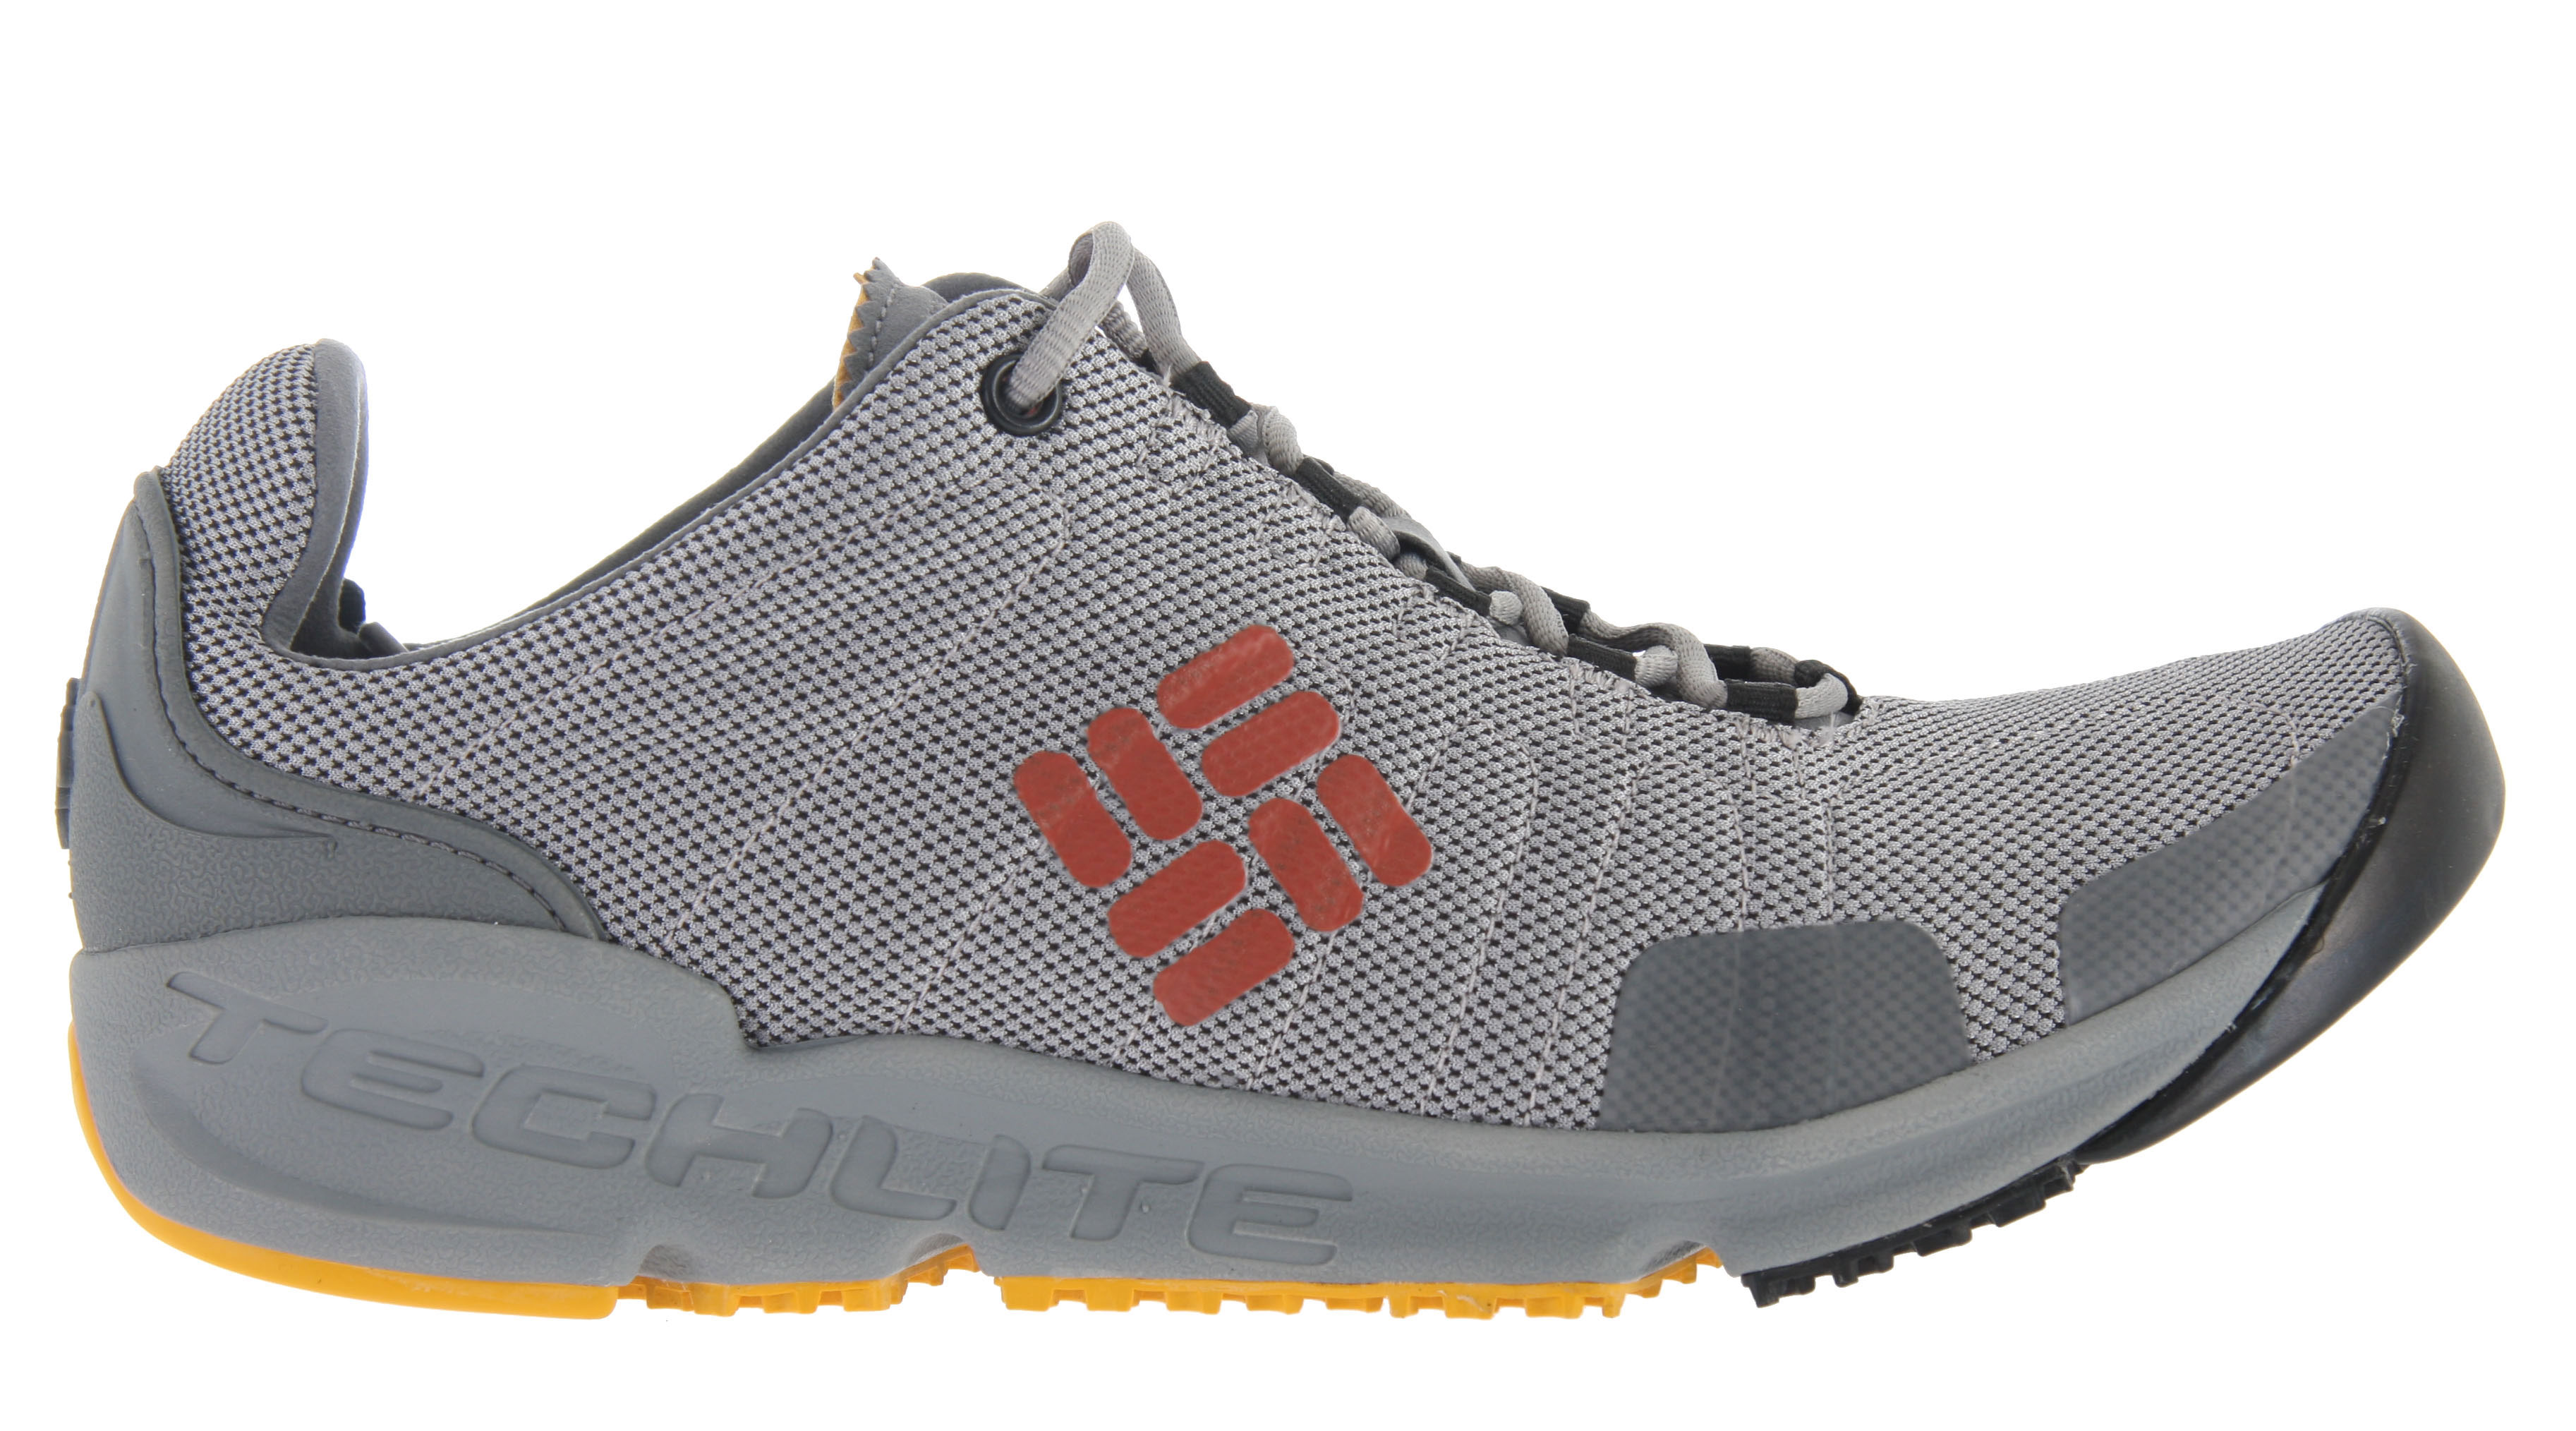 Camp and Hike What goes up must come down, a task the multi-sport Columbia Descender Shoe is well suited for. Inspired by rock climbing but meant for all multi-sport activities, it's designed as the ultimate walk-off shoe, perfect after the snug confines of a rock climbing or hiking boot. A minimal closed-mesh upper features micro-suede overlays for stability, while a Techlite heel and tongue lends serious comfort. The midsole features lightweight cushioning foam and a stabilizing TPU shank, while a mix of Omni-Grip sticky rubber and high-traction rubber on the outsole provides maximum grip on rocky routes and rough trails. Key Features of the Columbia Descender Shoes: Closed mesh upper micro-suede overlays and webbing Lightweight, packable design Back carabineer loop Single-density Techlite foam midsole Internal TPU shank for torsion control Omni-Grip sticky rubber compound forefoot for maximum traction on rock and other hard surfaces Omni-Grip high-traction rubber compound for sure footing on varied terrain Weight: Size 9, 1/2 pair = 9.55oz/271g - $48.95